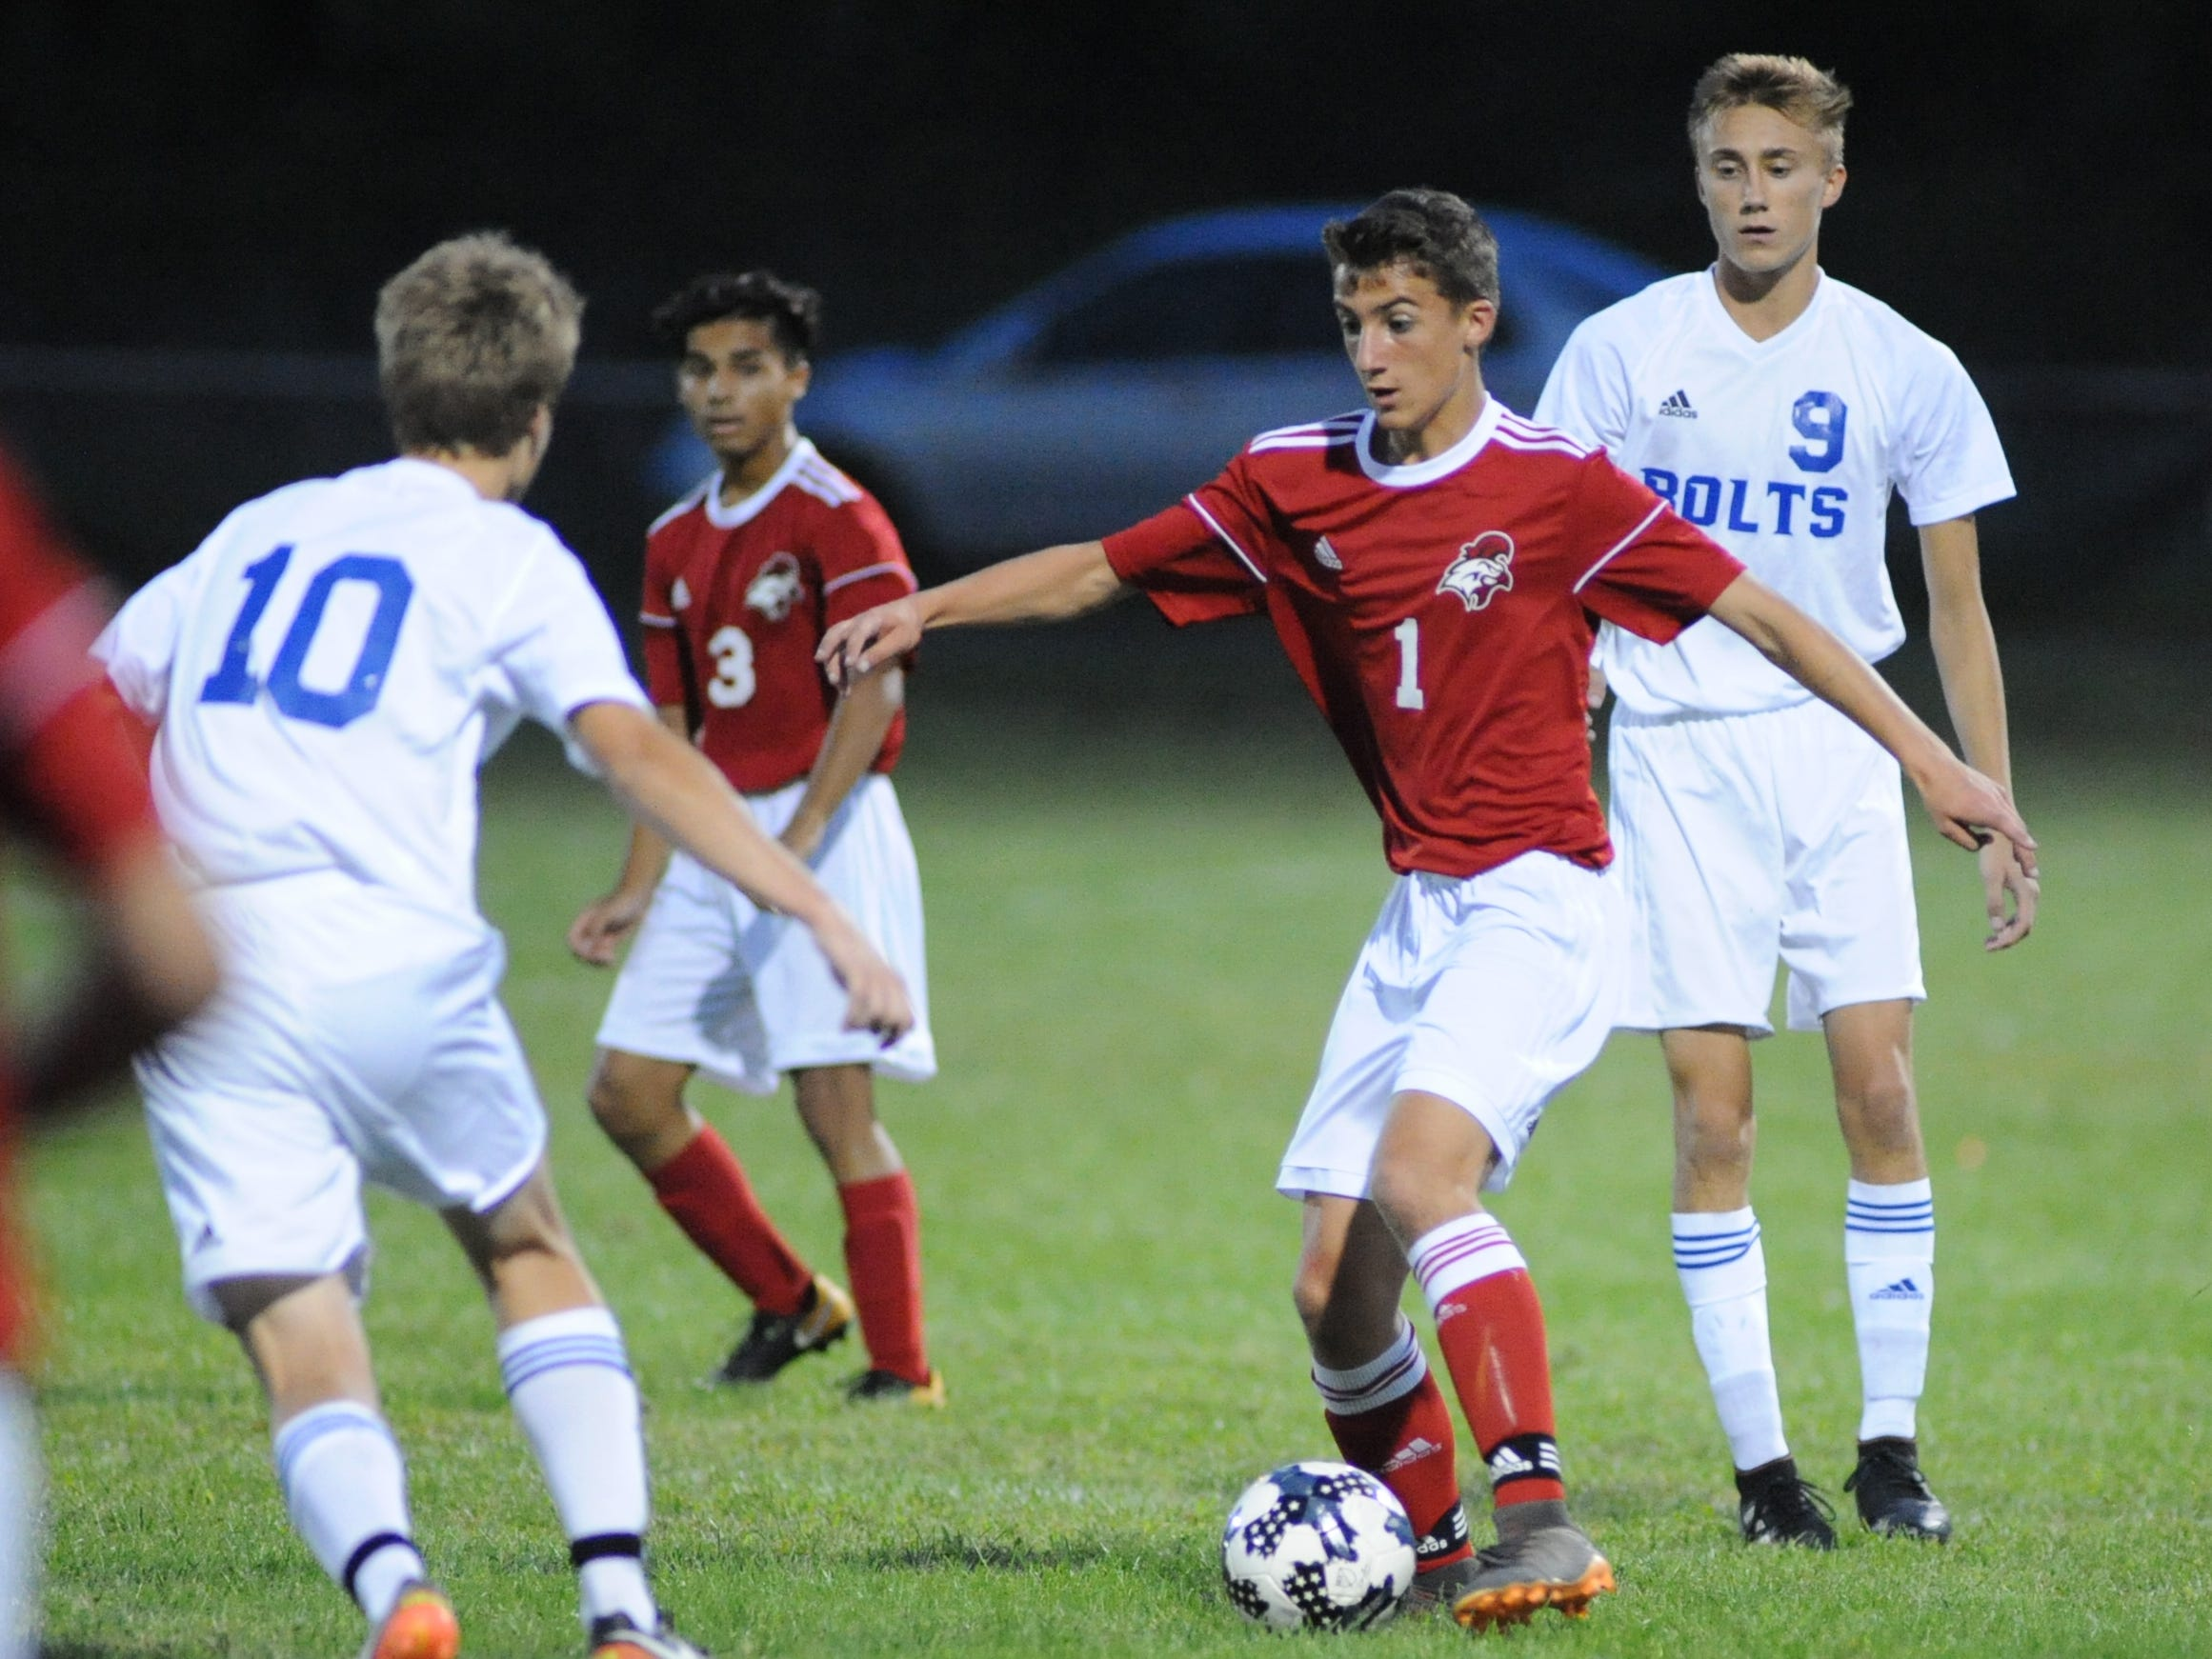 Vineland's Jude Hill moves the ball during a boys soccer game against Millville at Romano Sports Complex in Vineland, Monday, Sept. 17, 2018.